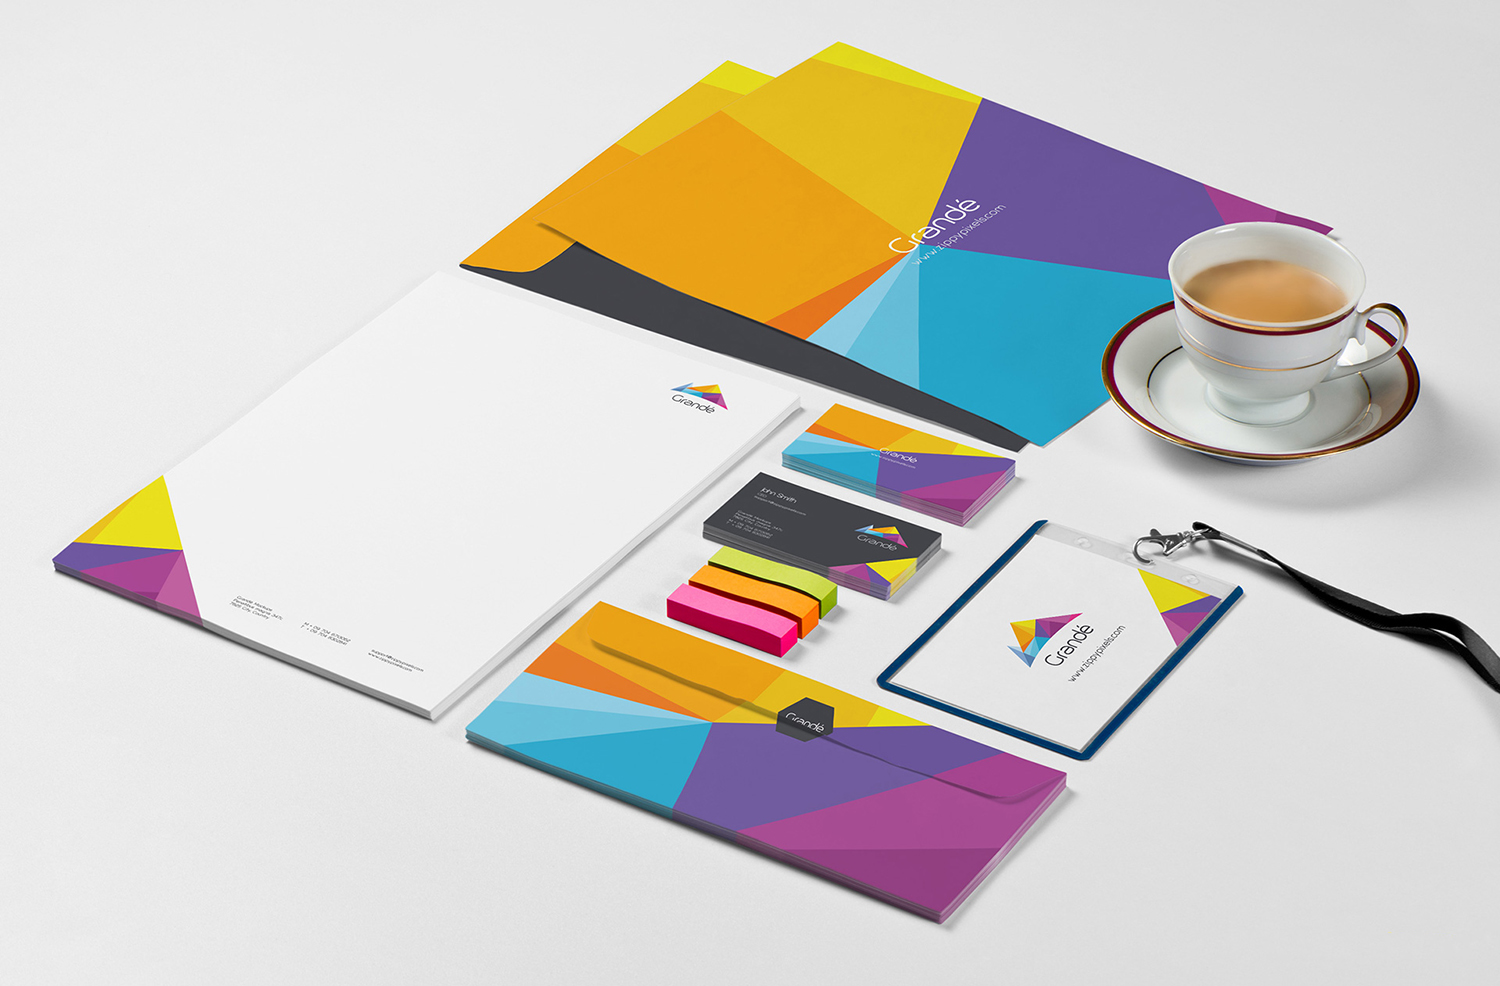 Free Photorealistic Stationery Branding PSD Mockups